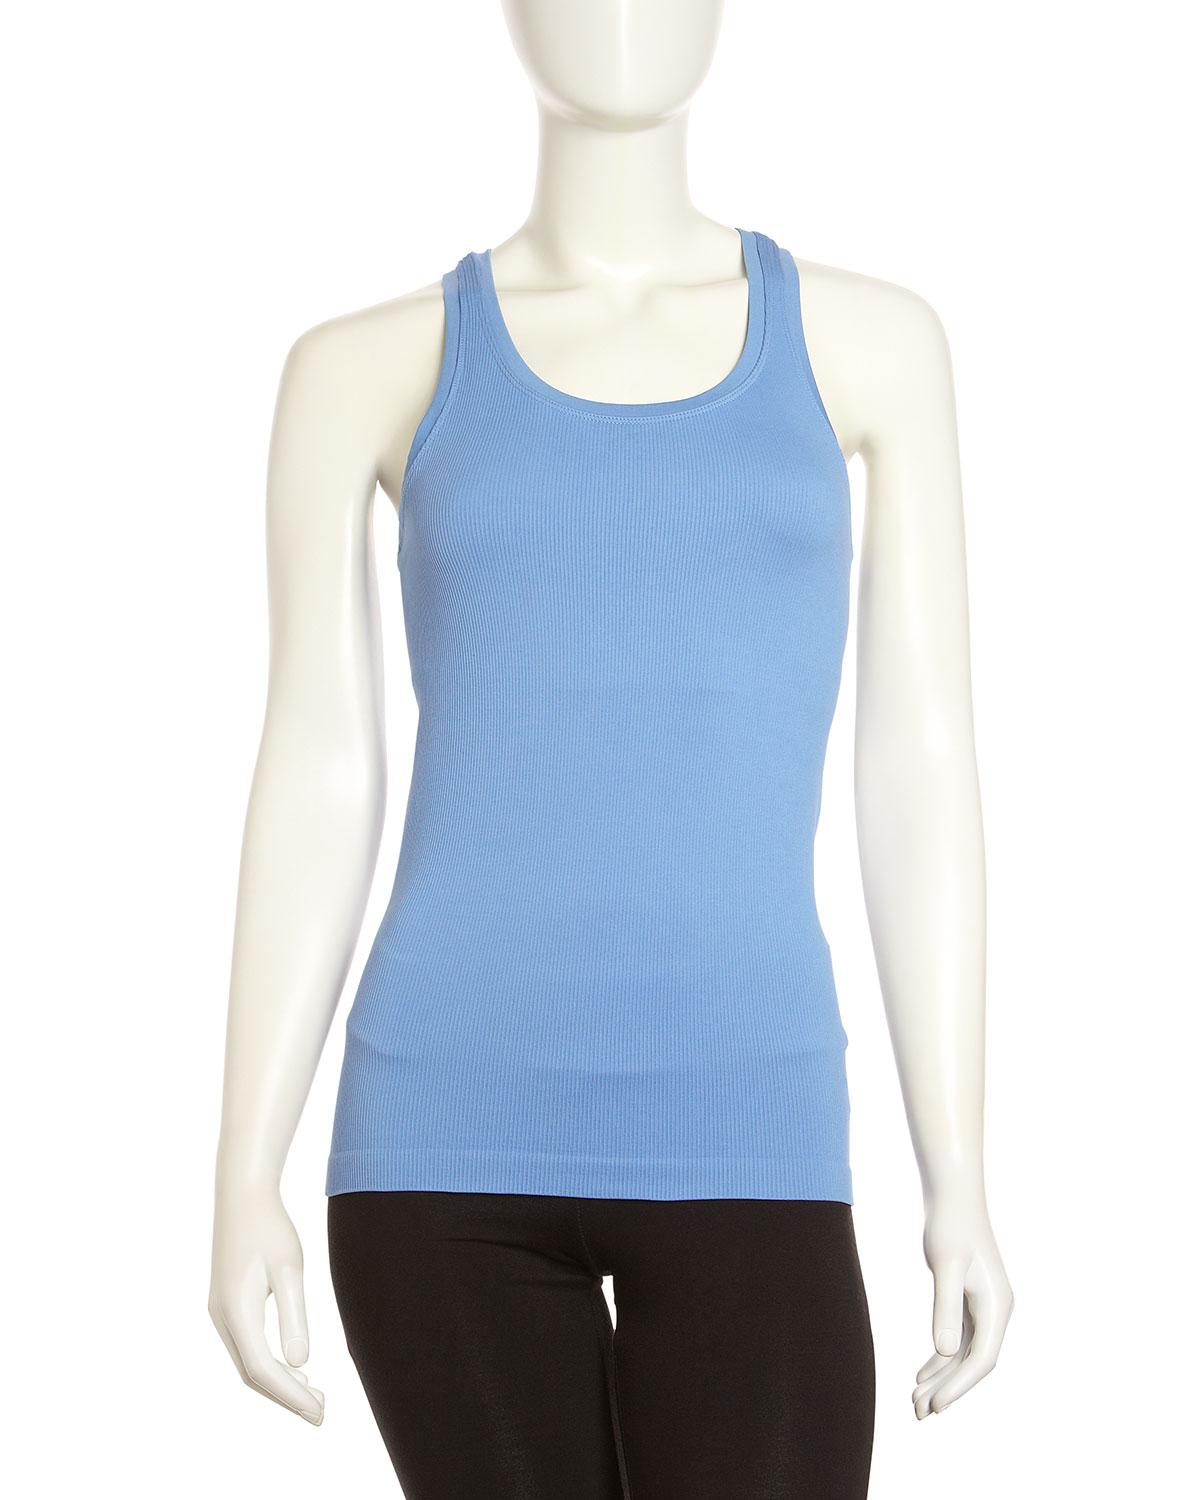 c2845352fd0a7 Lyst - Spanx Ribbed Racerback Tank Dynamic Blue in Blue